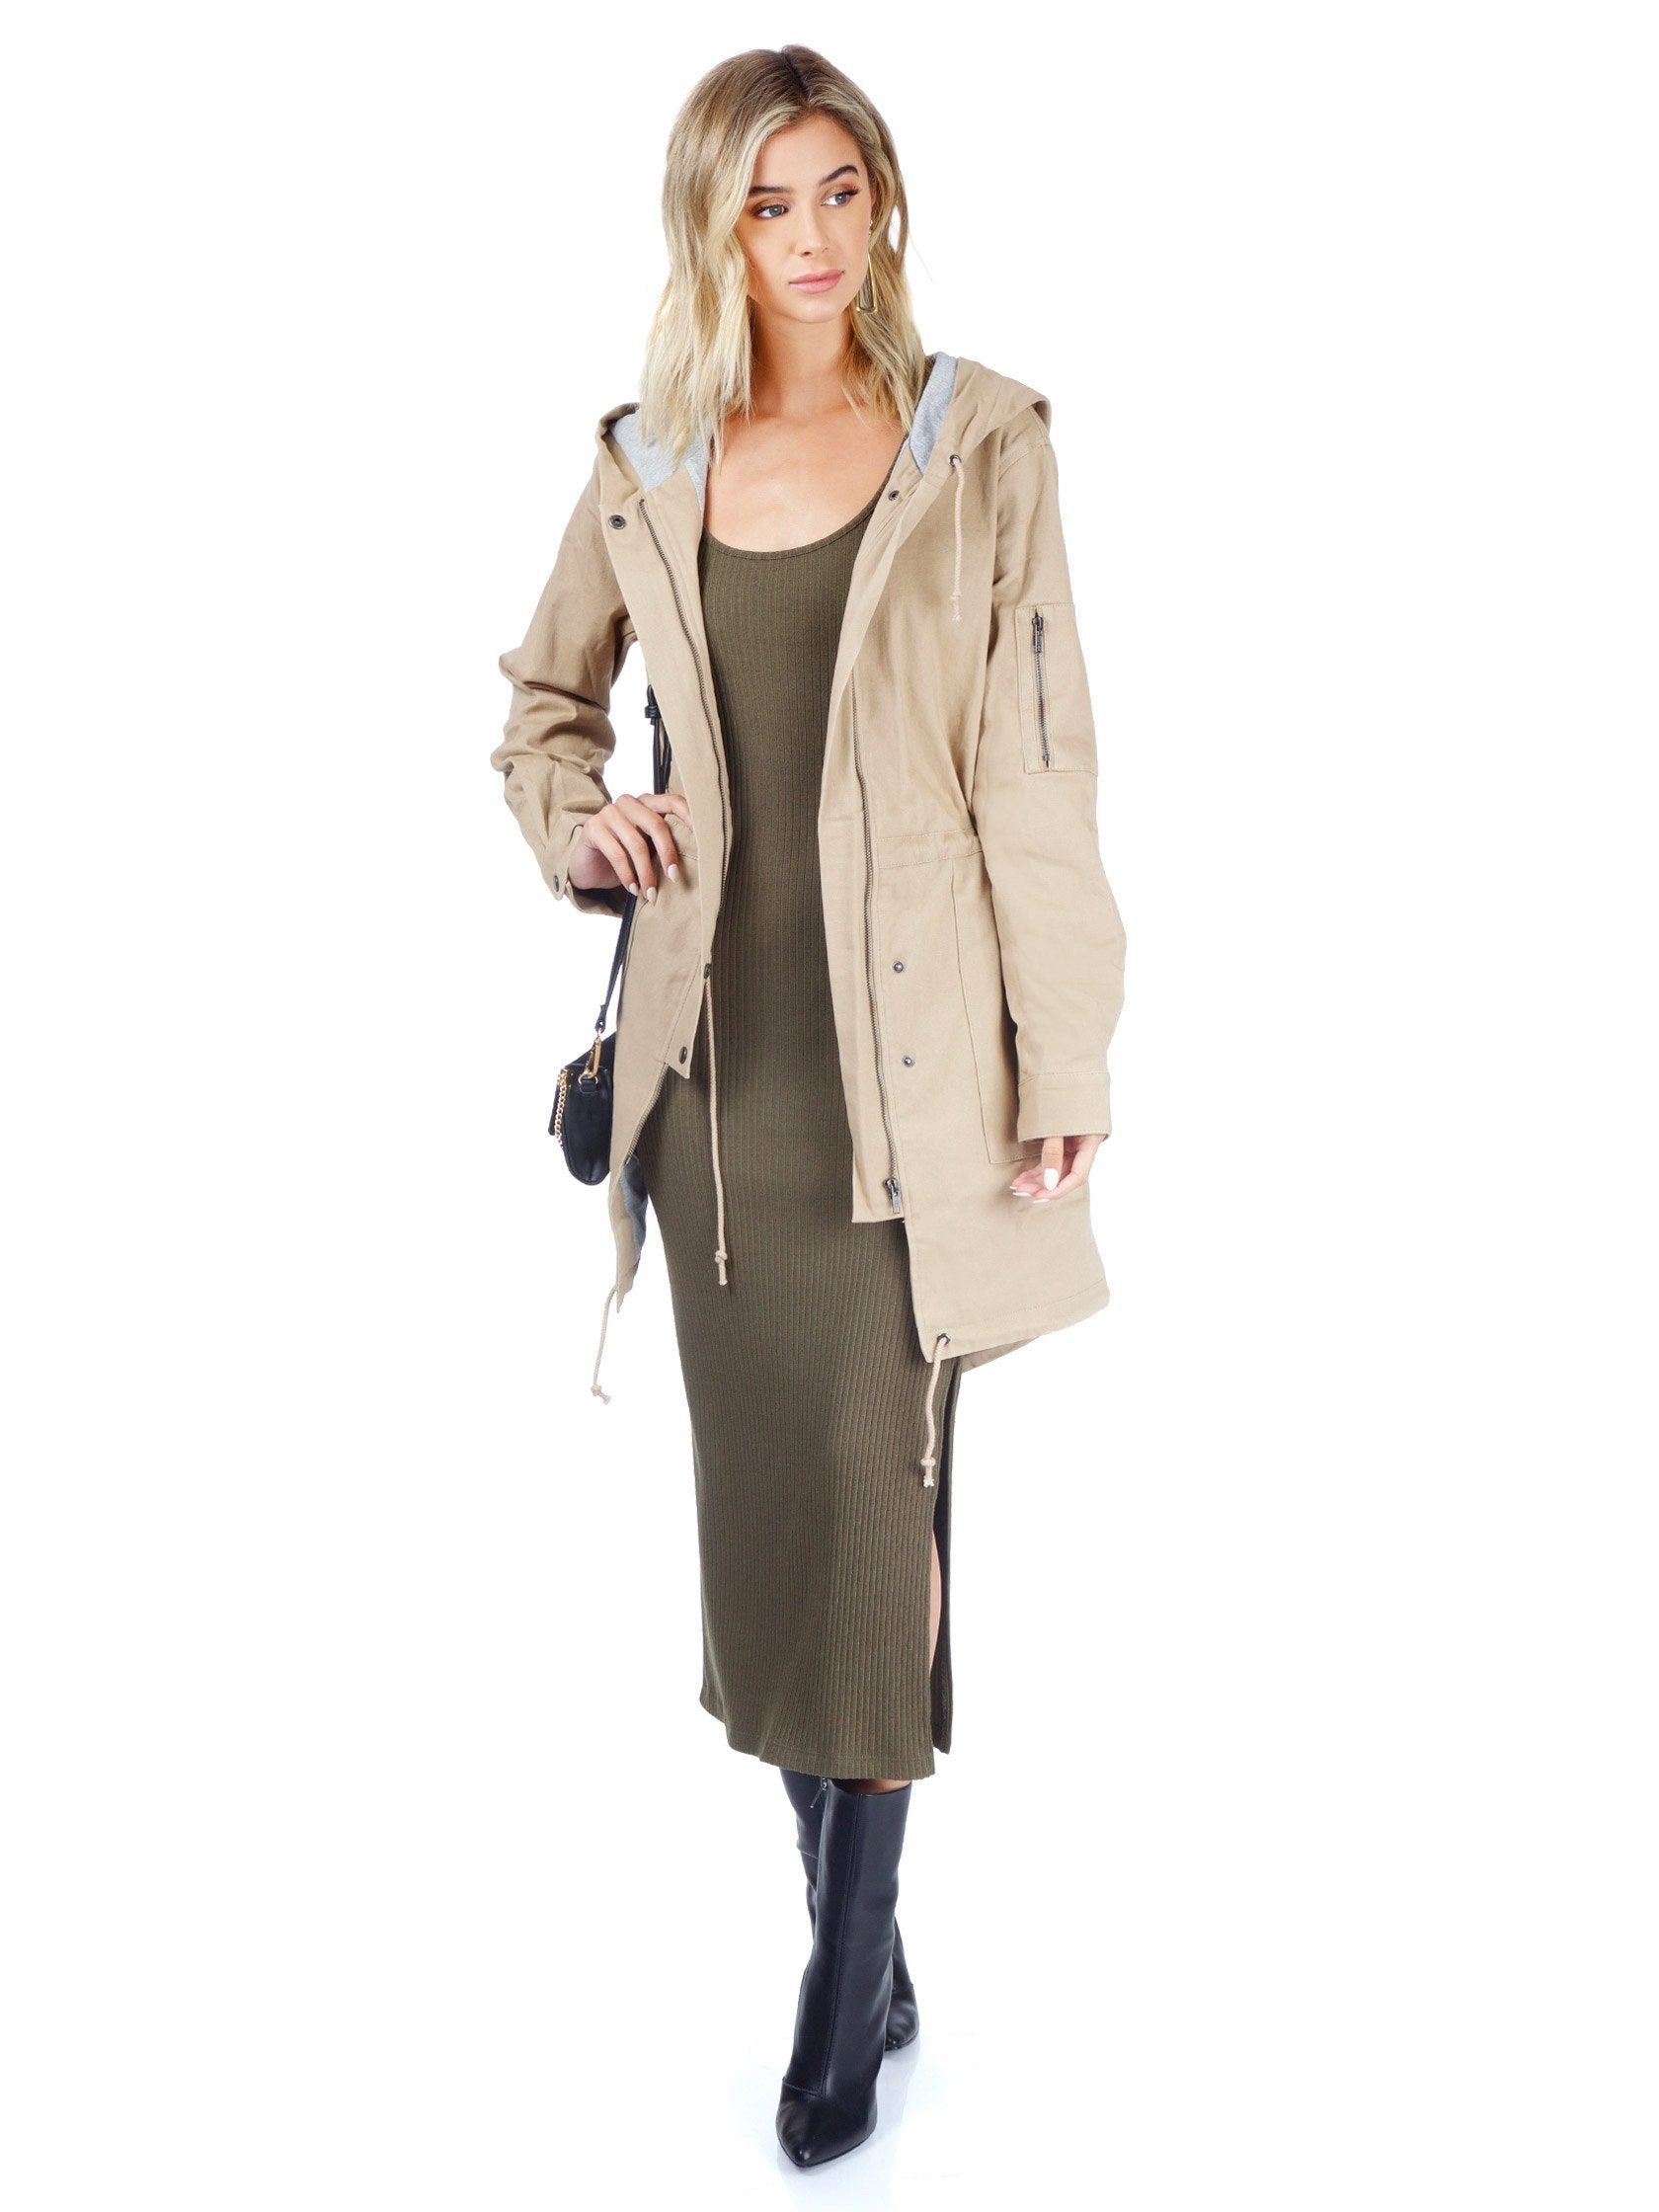 Women wearing a jacket rental from Lush called Tan Cargo Jacket